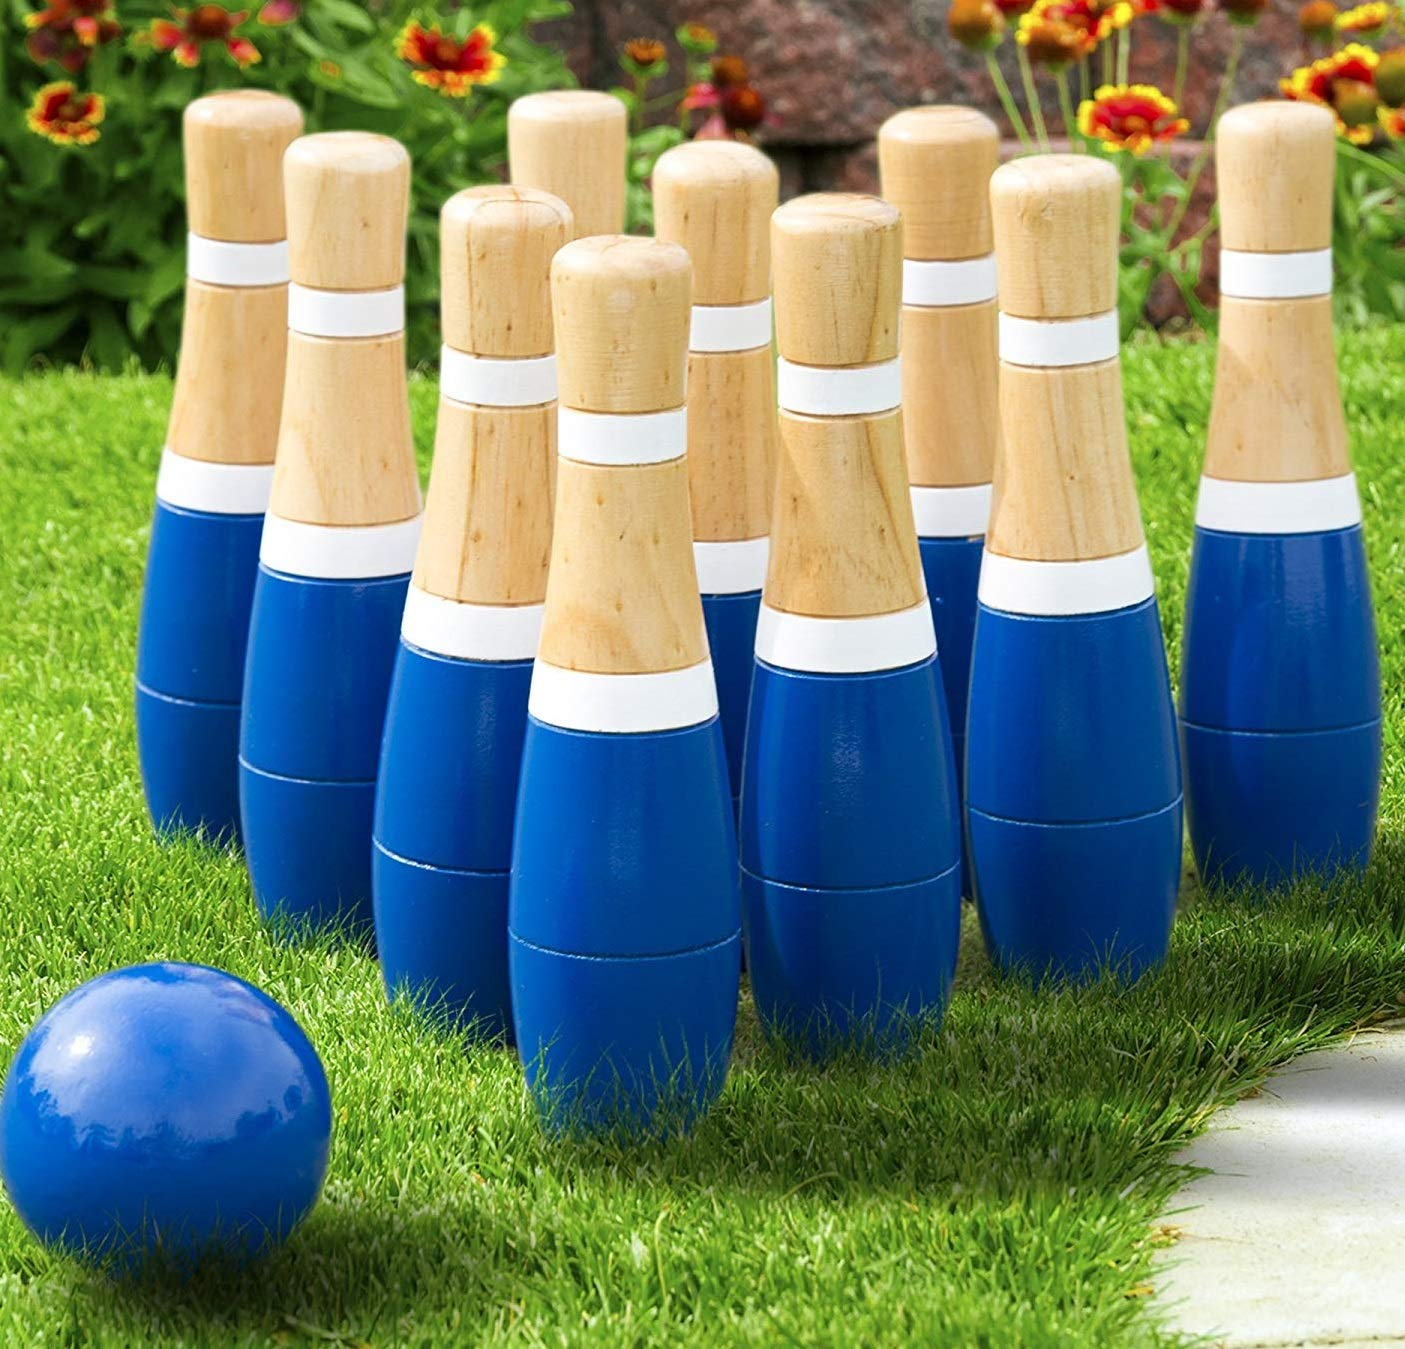 Hey! Play! Trademark Global - Toys Lawn Bowling Game/Skittle Ball- Indoor and Outdoor Fun for Toddlers, Kids, Adults -10 Wooden Pins, 2 Balls, and Mesh Bag Set (8 Inch)